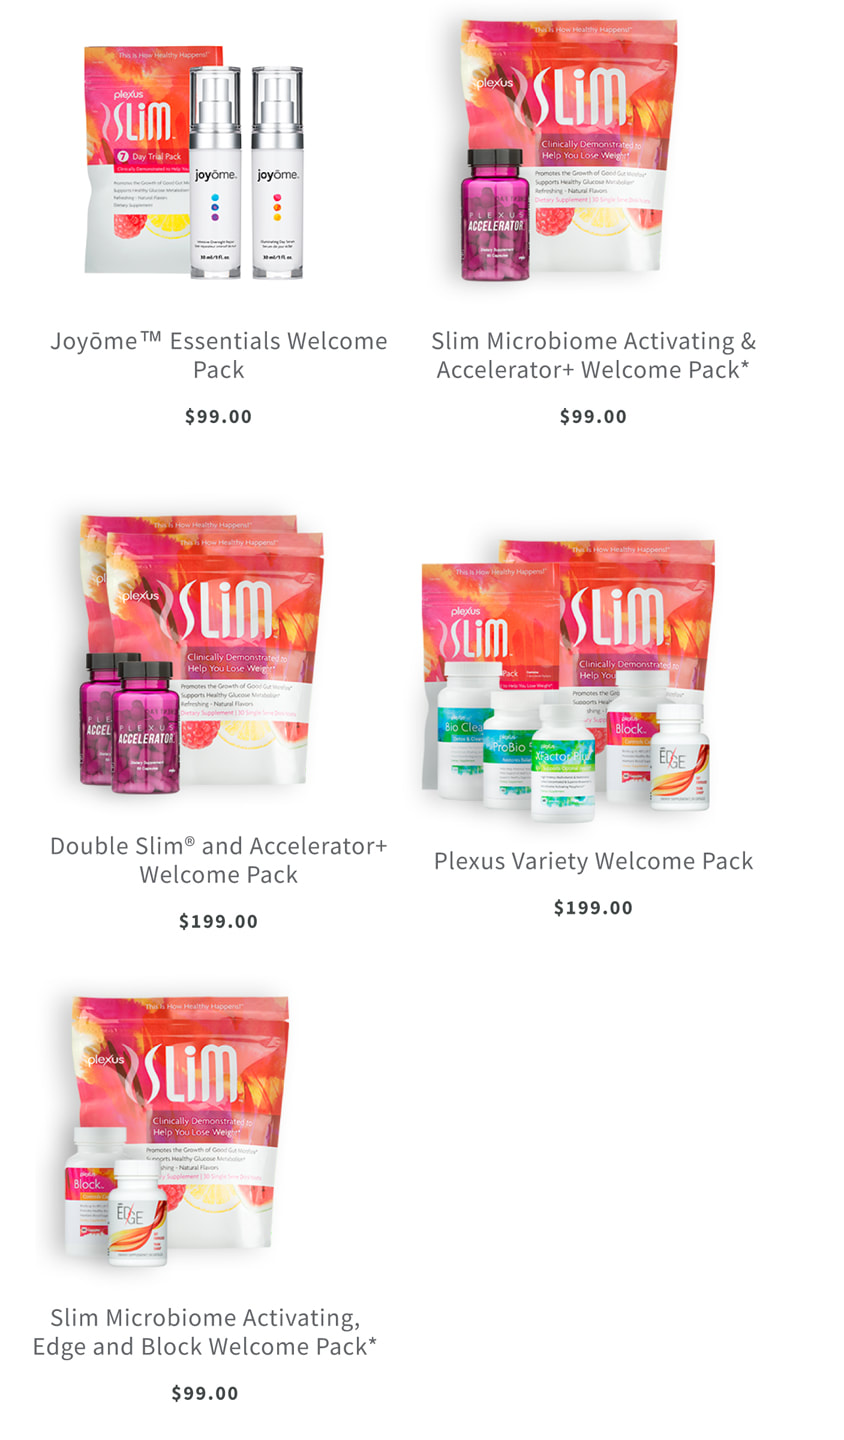 Plexus welcome pack